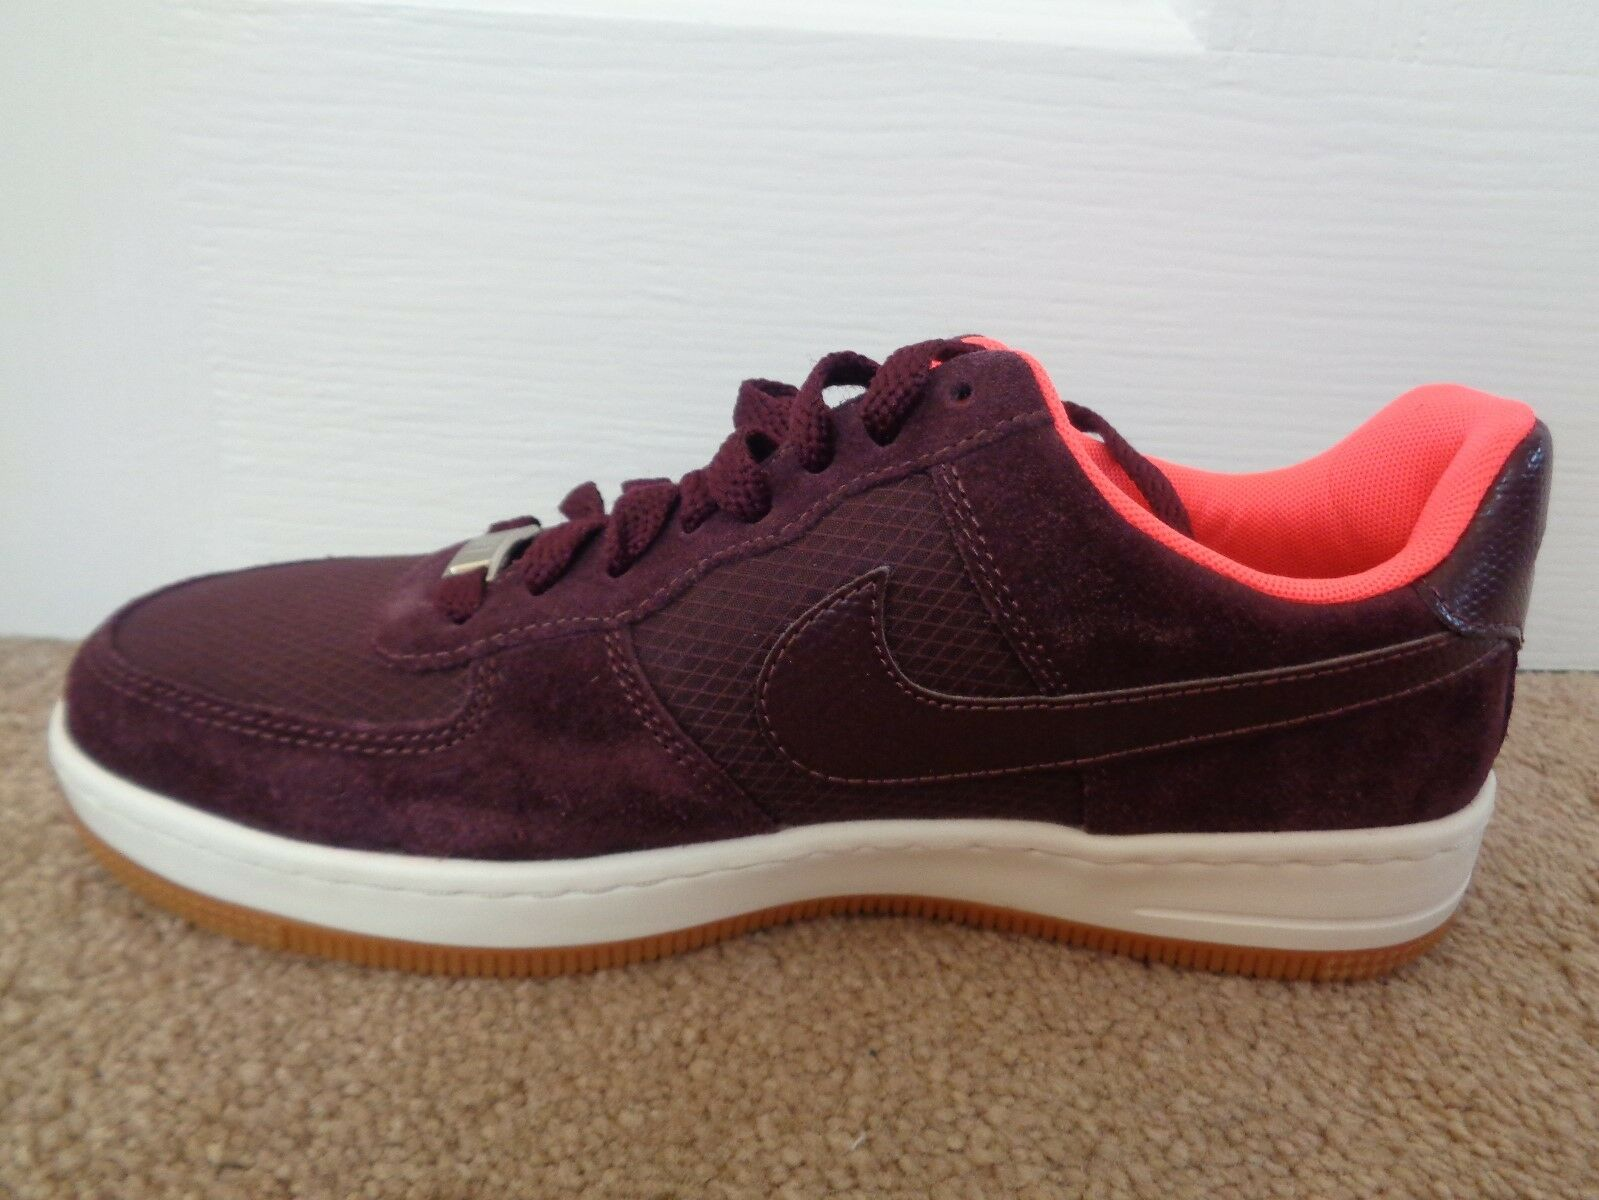 Nike Air AF1 Ultra Force womens trainers 654852 601 601 601 uk 4.5 eu 38 us 7 NEW 9990be